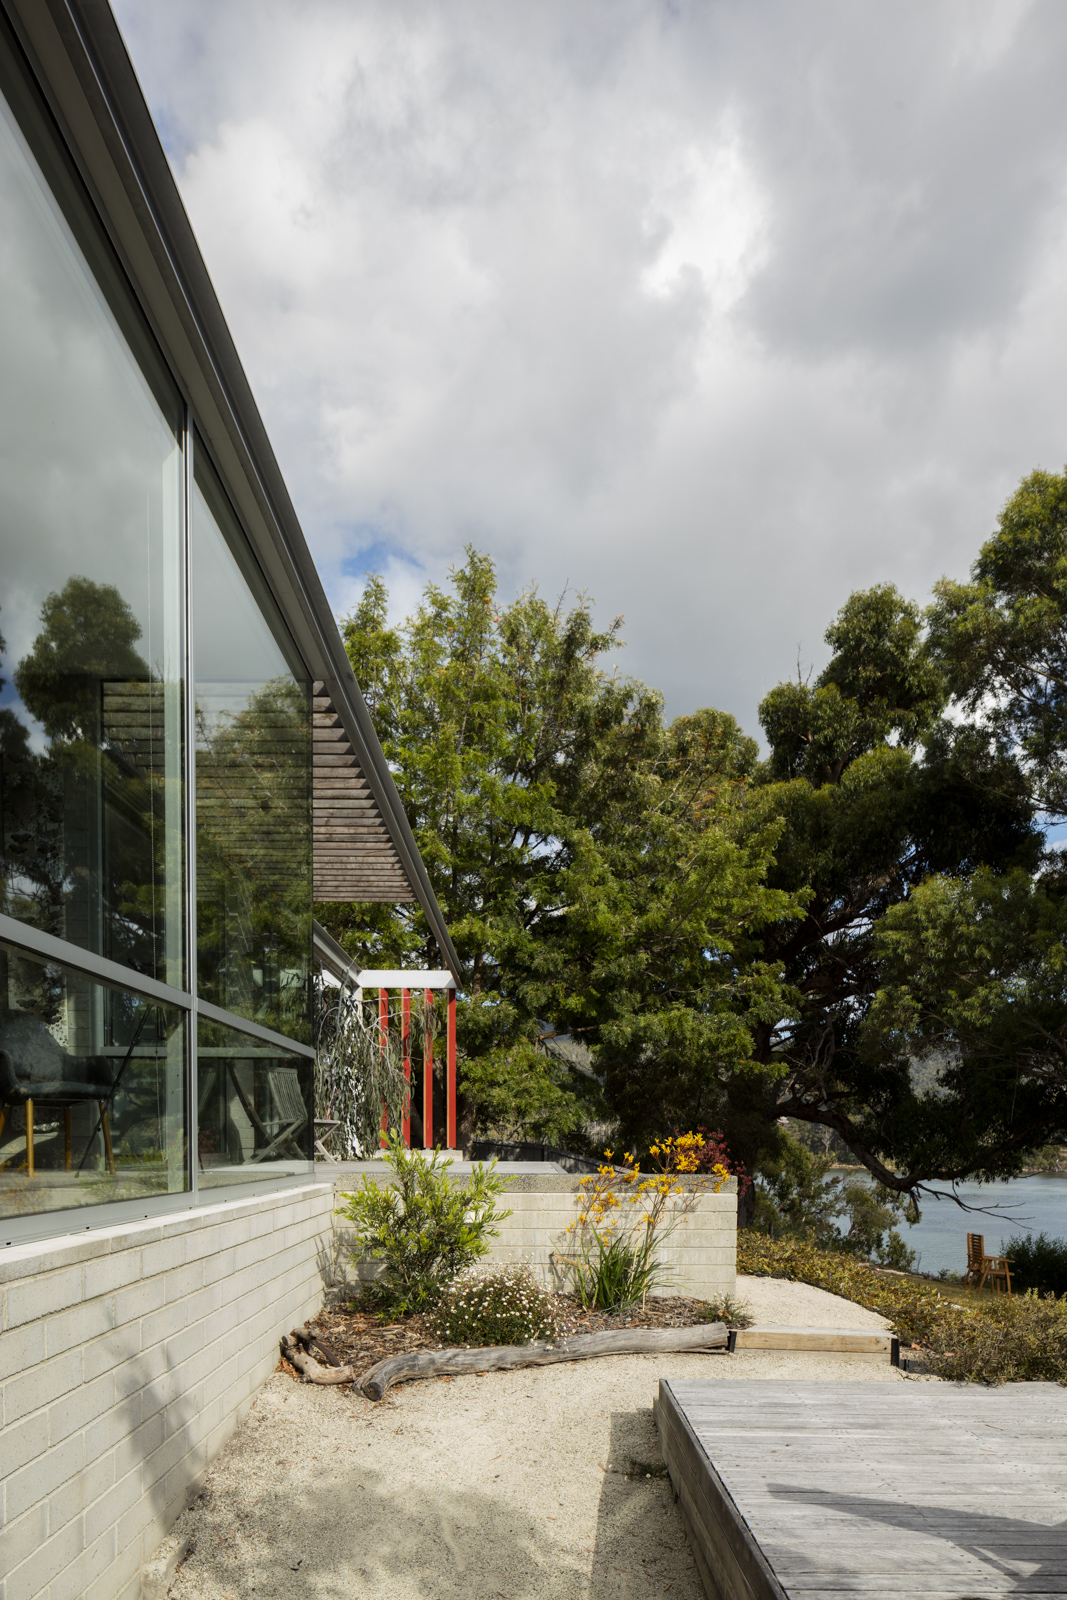 Gallery Of Elms House By Stuart Tanner Architects Local Australian Architecture & Design Tasmania Image 2